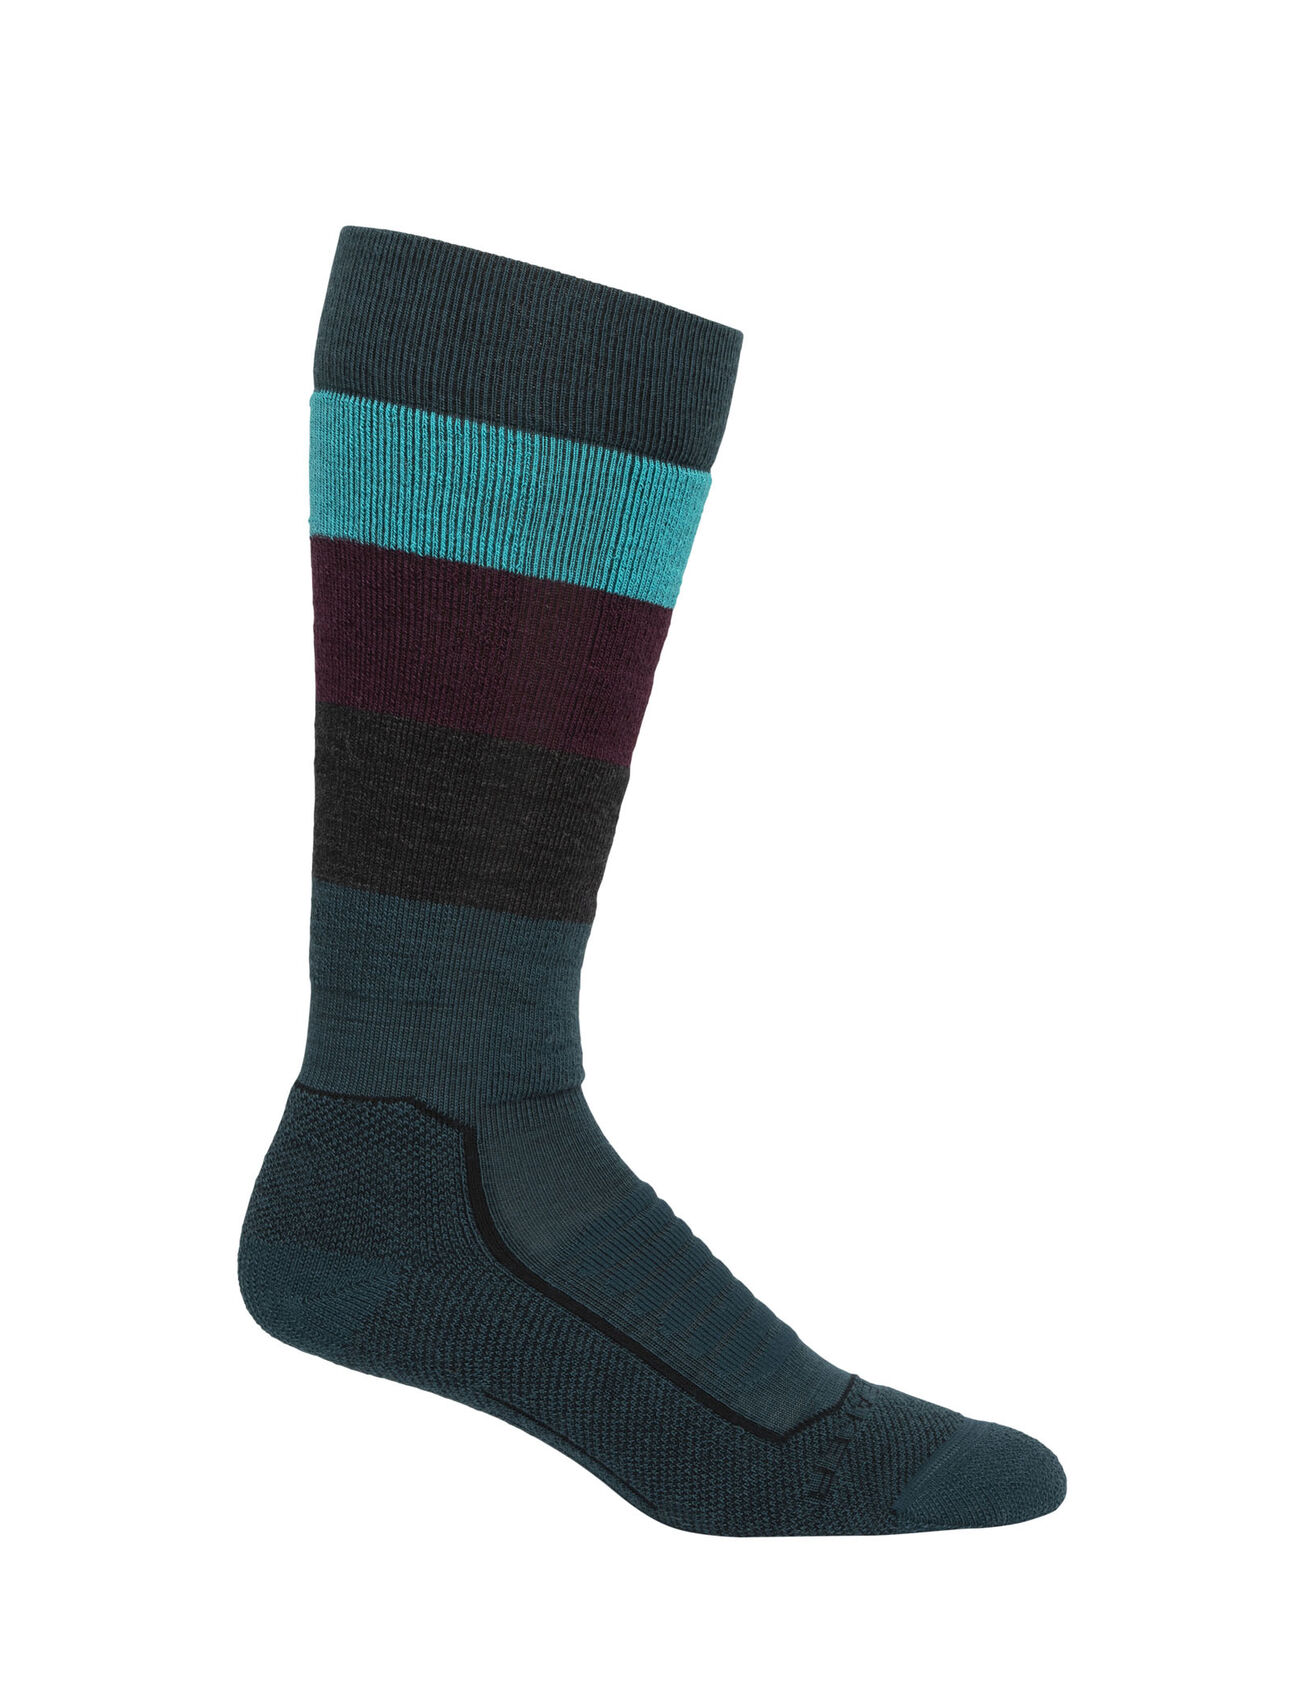 Icebreaker Merino womens Ski Medium Cushion Merino Wool Over the Calf Socks